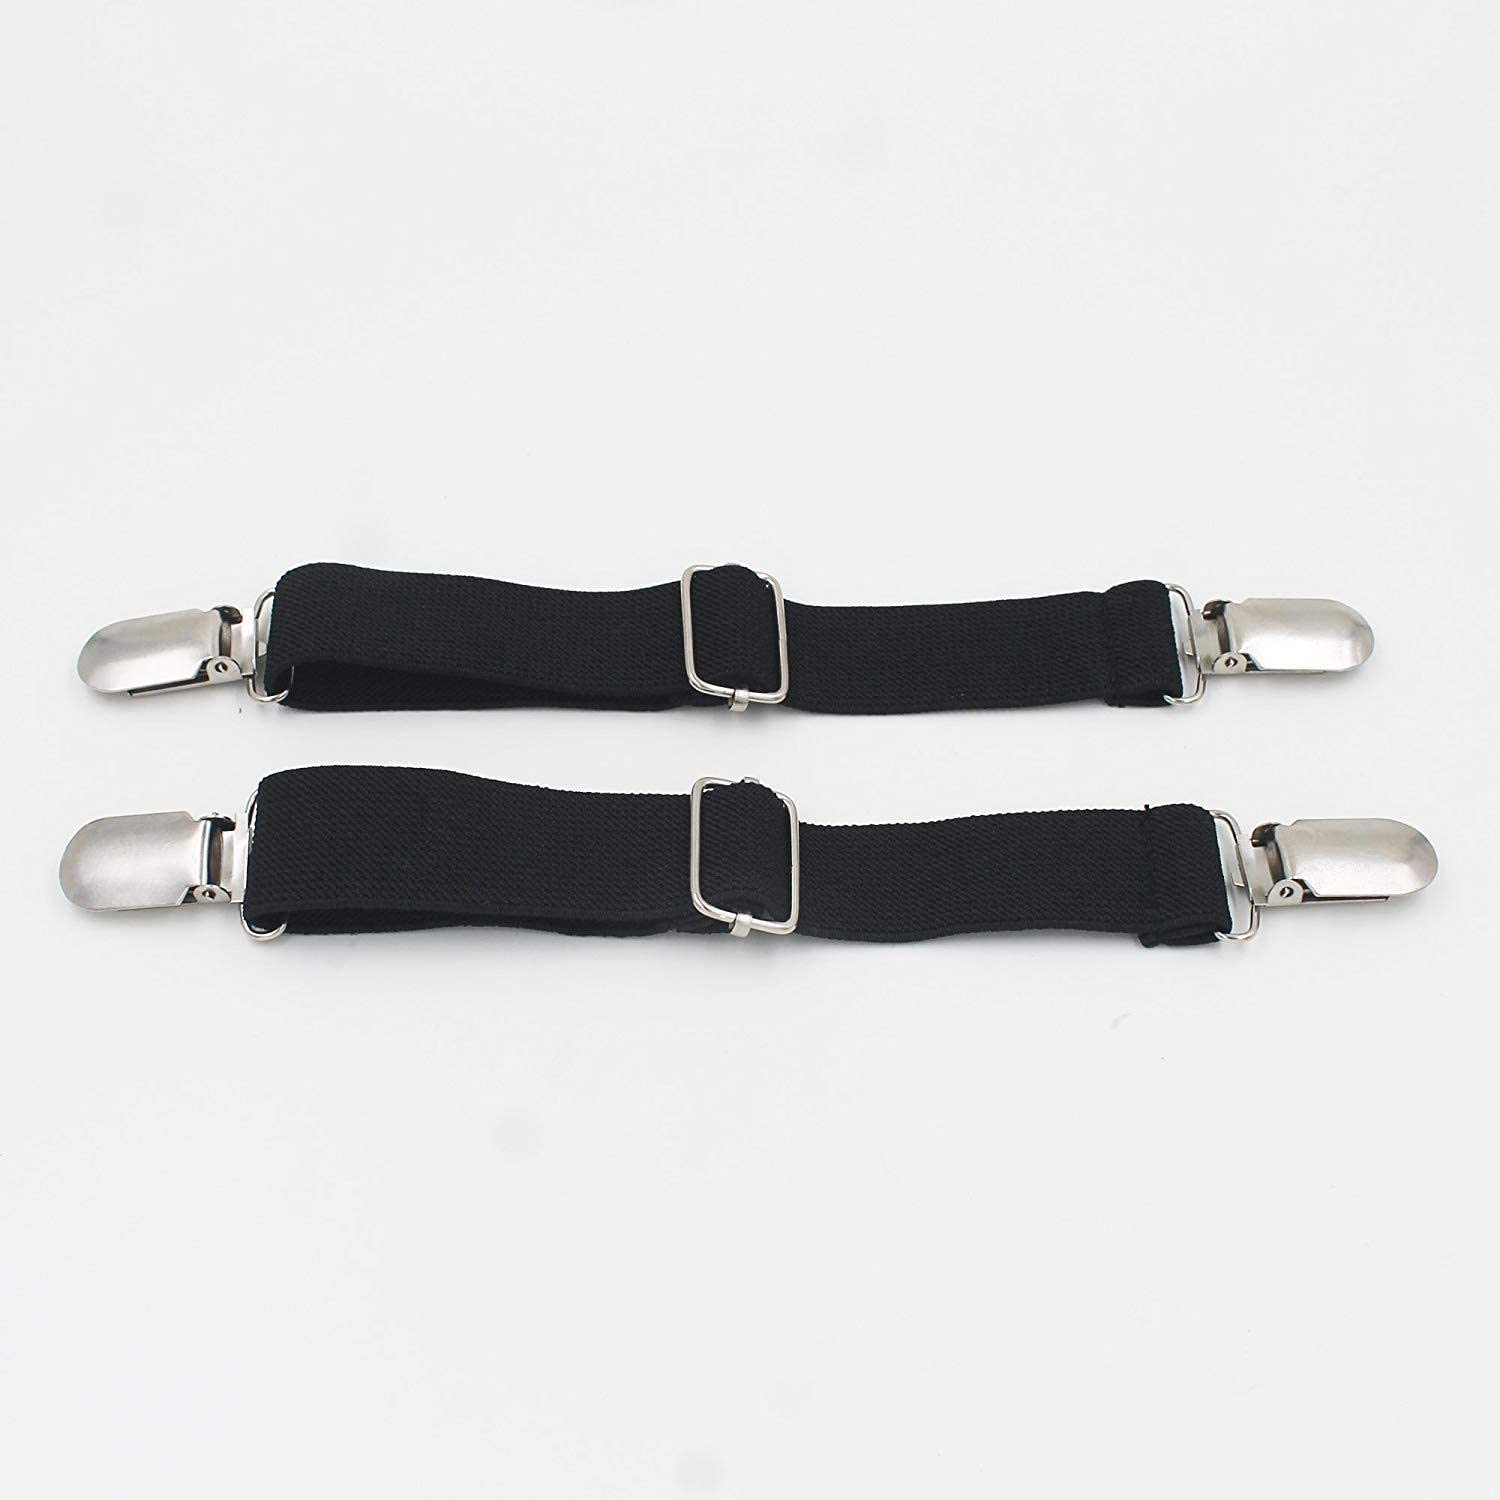 Trouser Braces Trouser Clip Chain Guard Vintage Cult Bike Scooter Moped Motorcycle